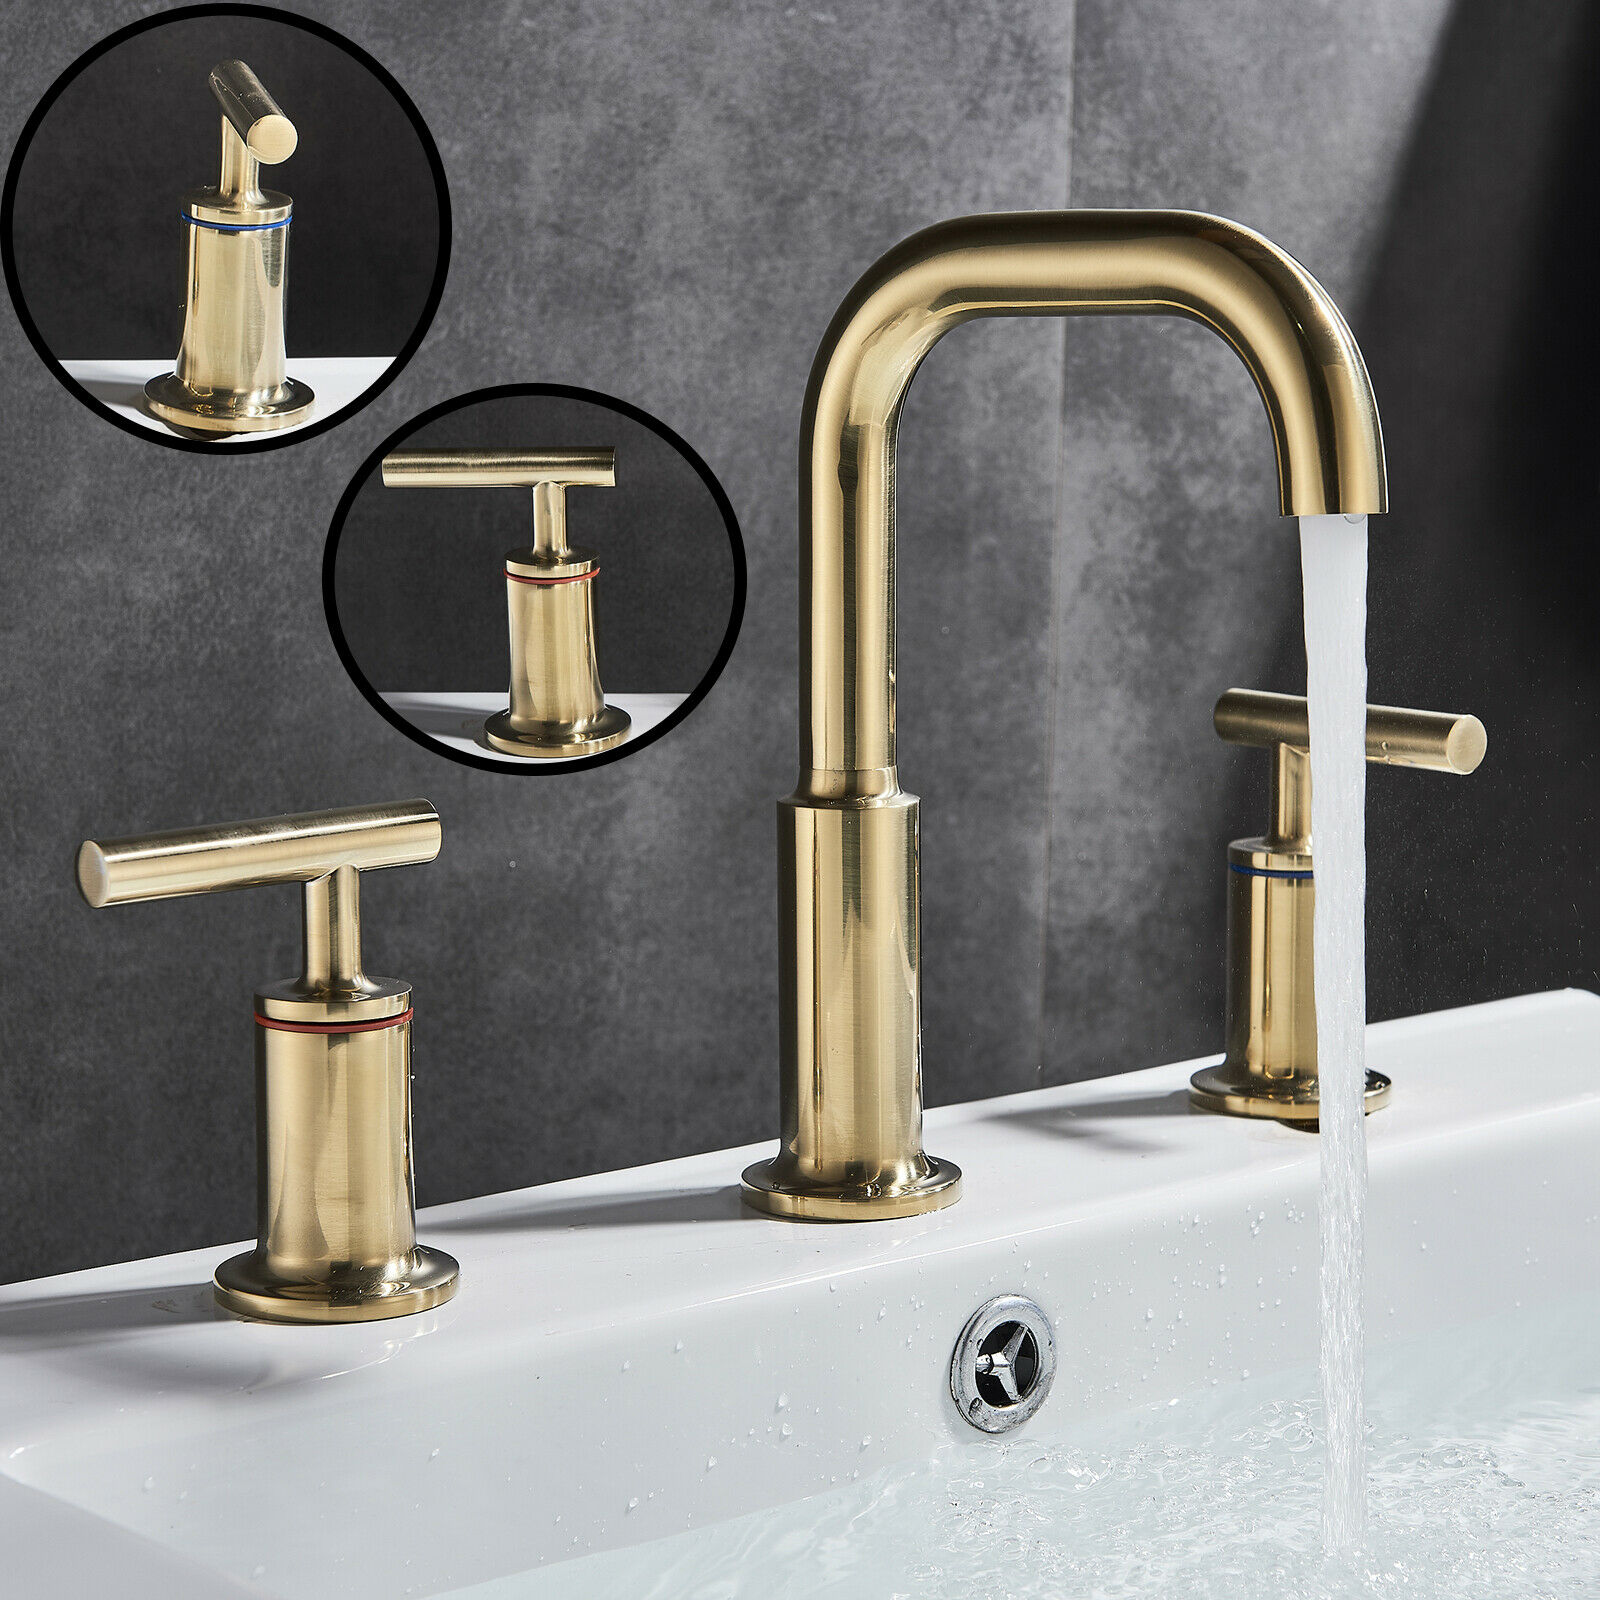 Axor Starck V Faucet Brushed Gold 8 Inch Widespread Bathroom Basin Faucet Two Handle 3 Hole Mixer Tap